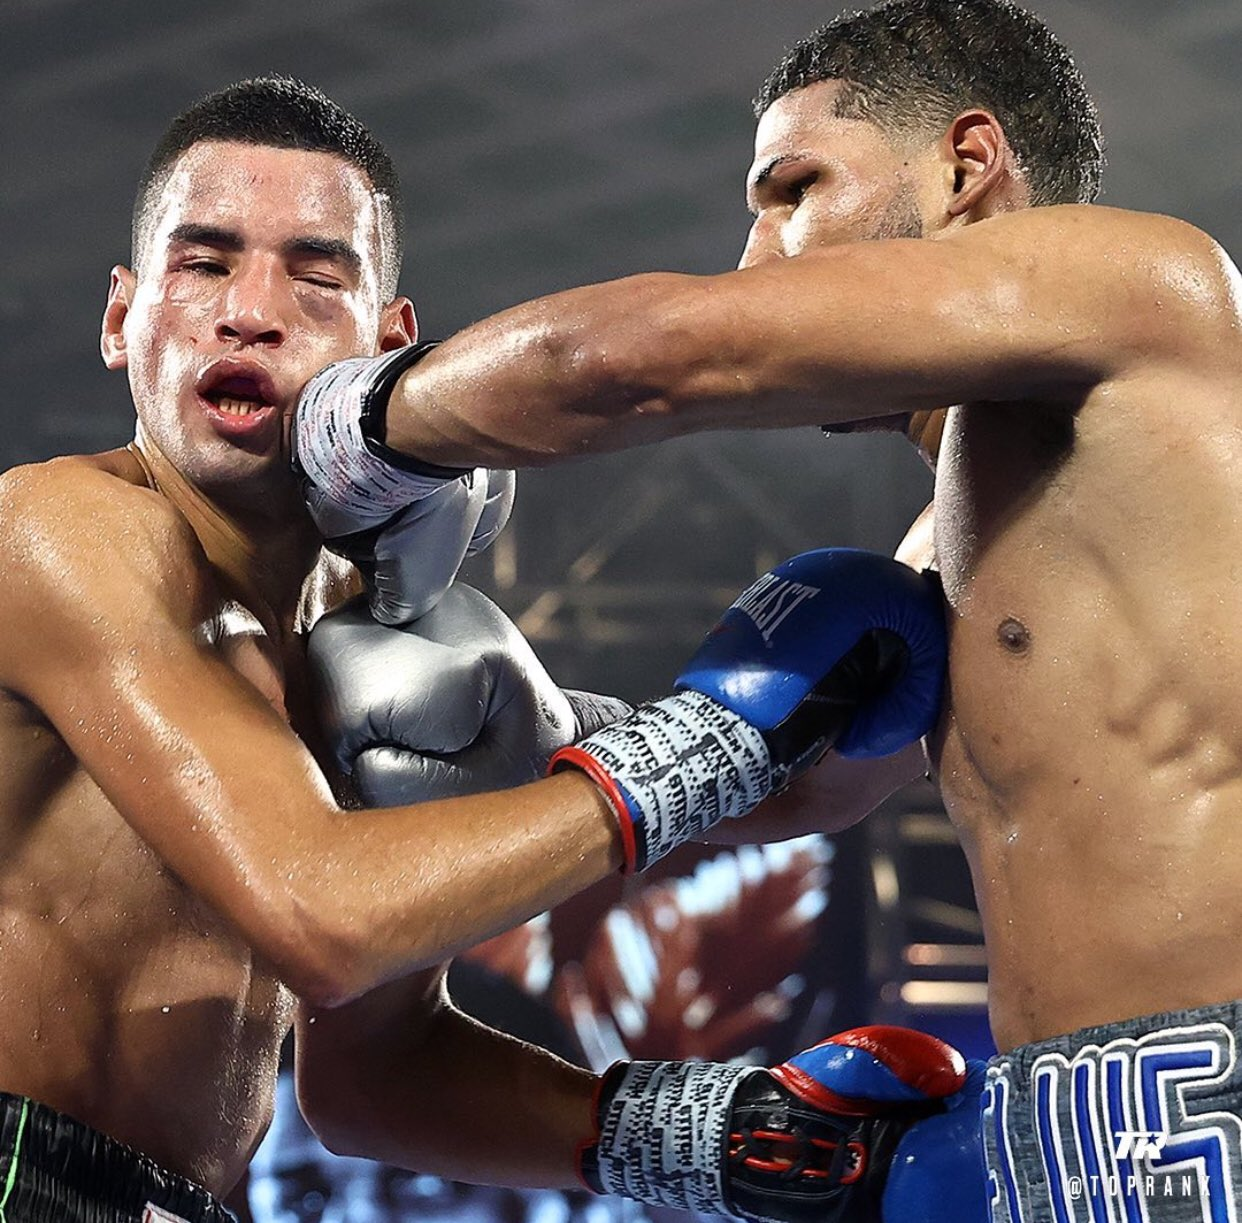 Gabriel Flores Jr. scored two knockdowns against veteran Jayson Velez foor a statement sixth round TKO win. Photo: Mikey Williams, Top Rank Boxing